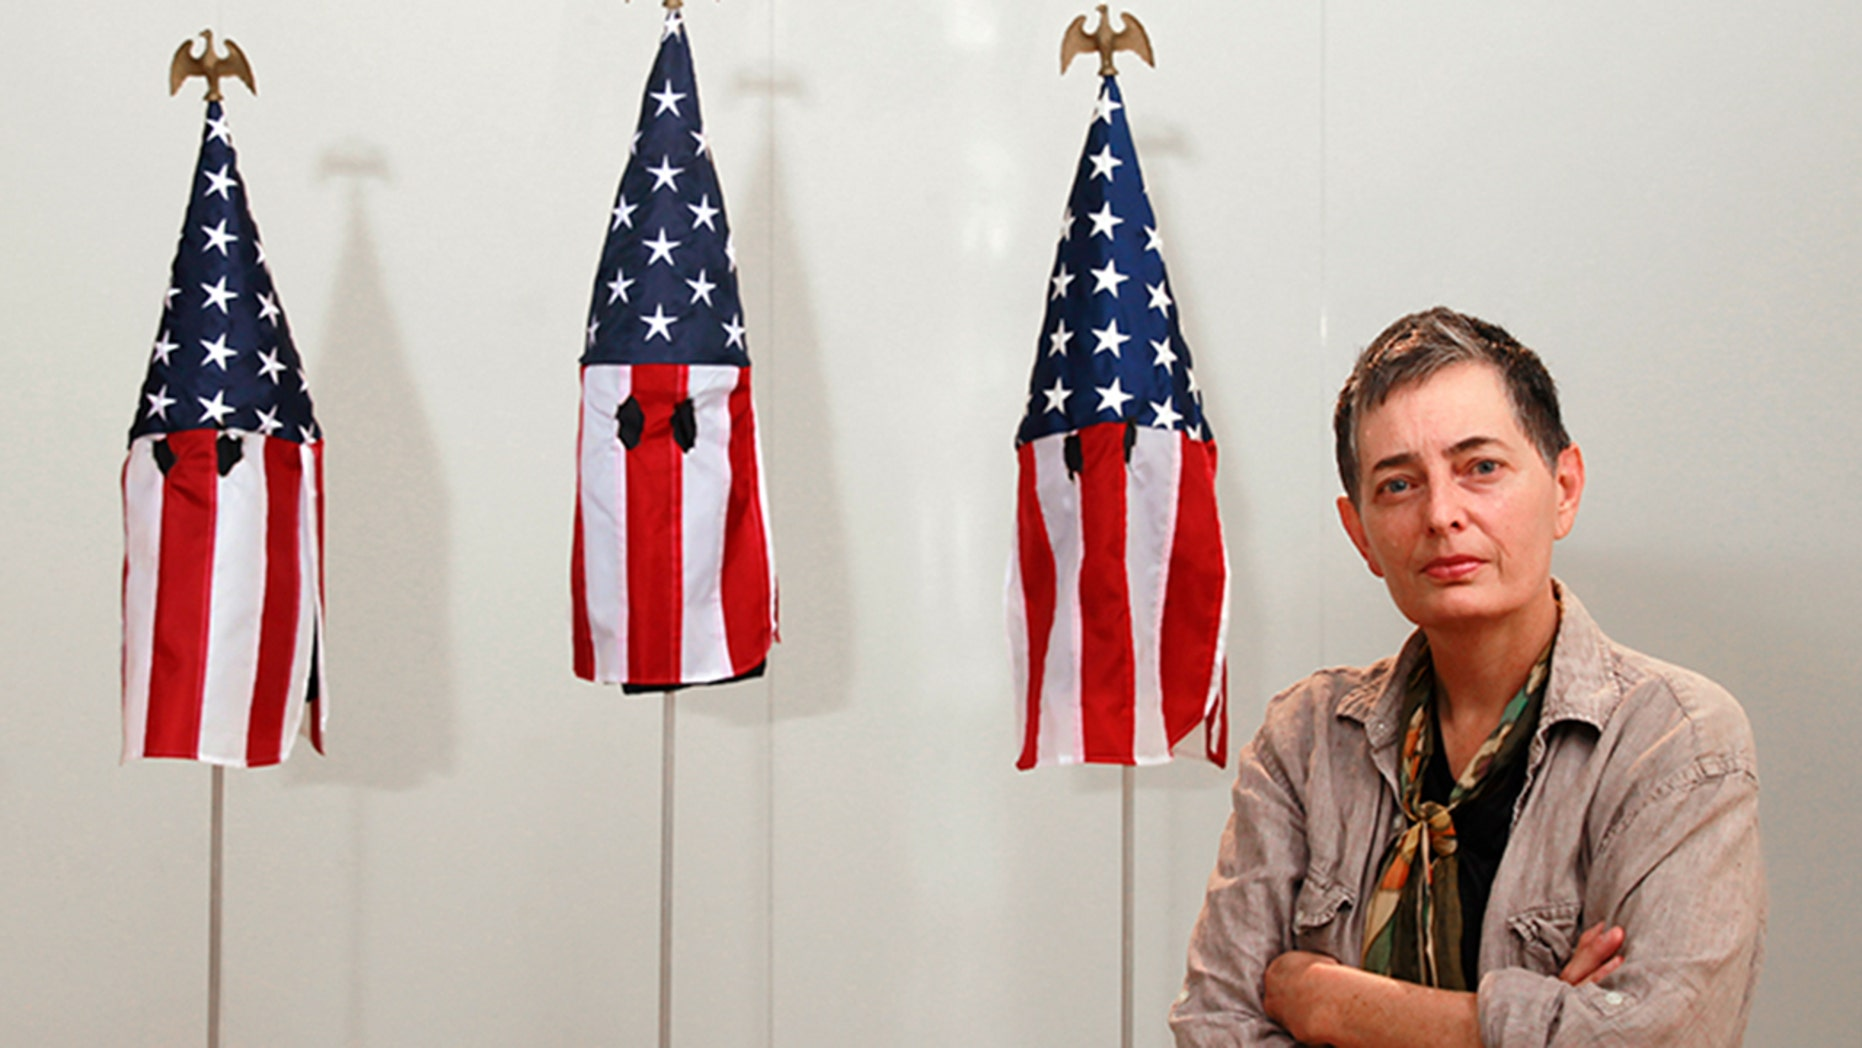 University of Miami professor Billie Lynn sparked outrage for her art exhibit displaying American flags as Ku Klux Klan hoods.